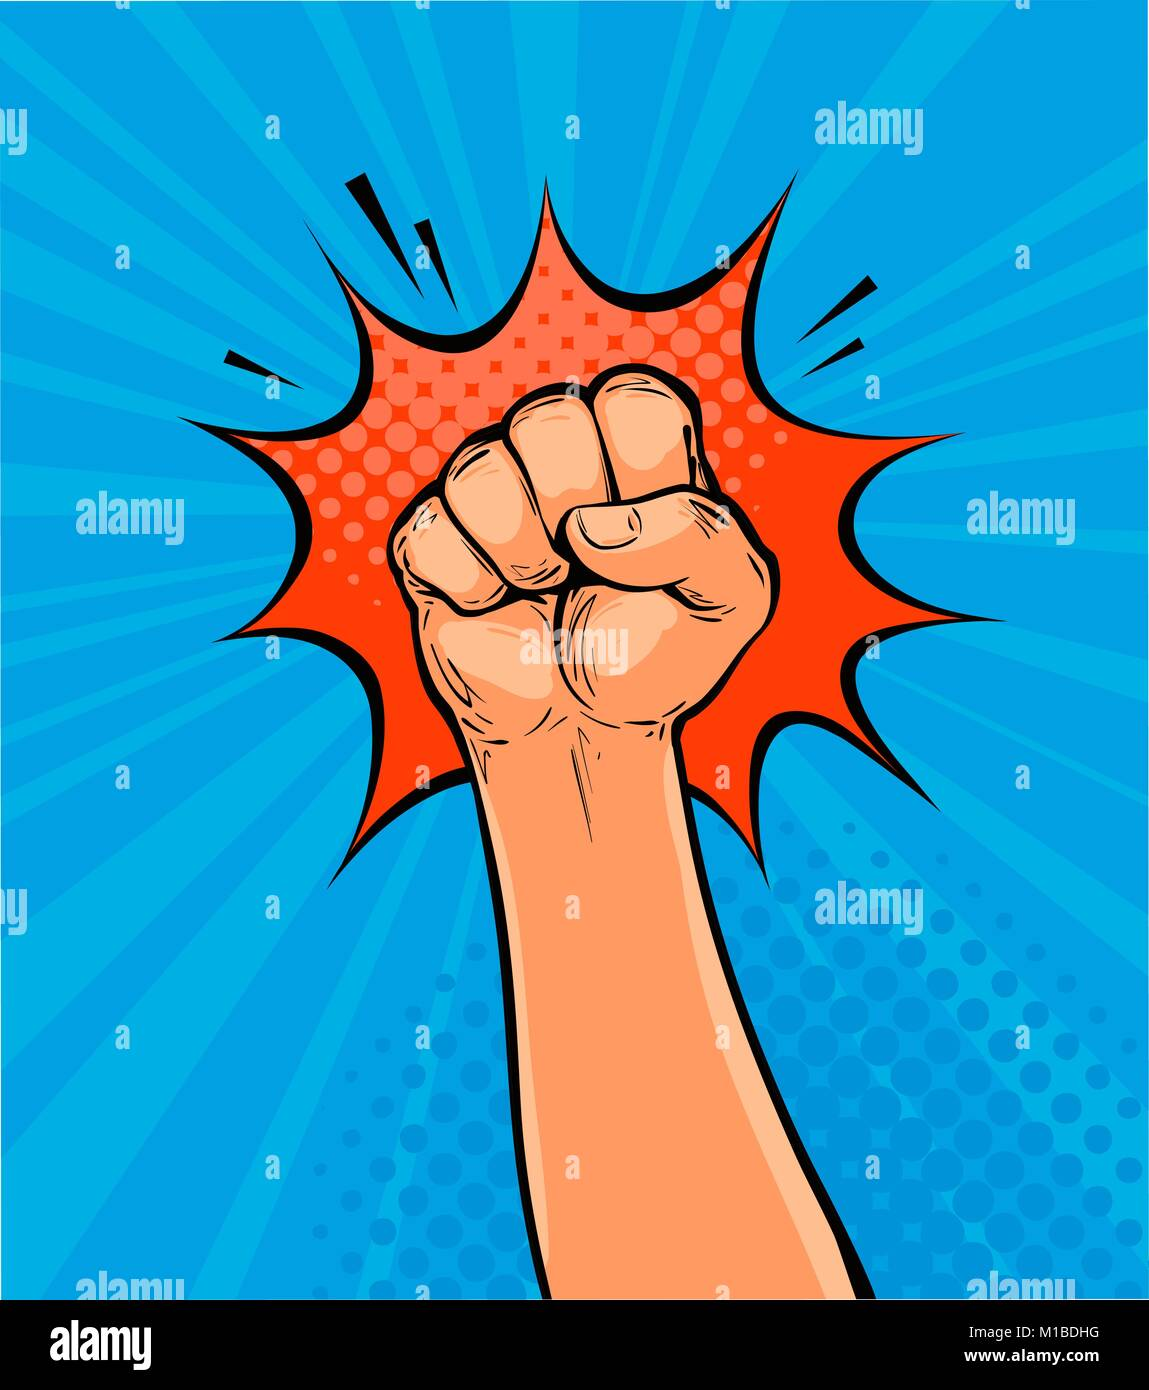 Raised up clenched fist drawn in pop art retro comic style. Cartoon vector illustration - Stock Vector